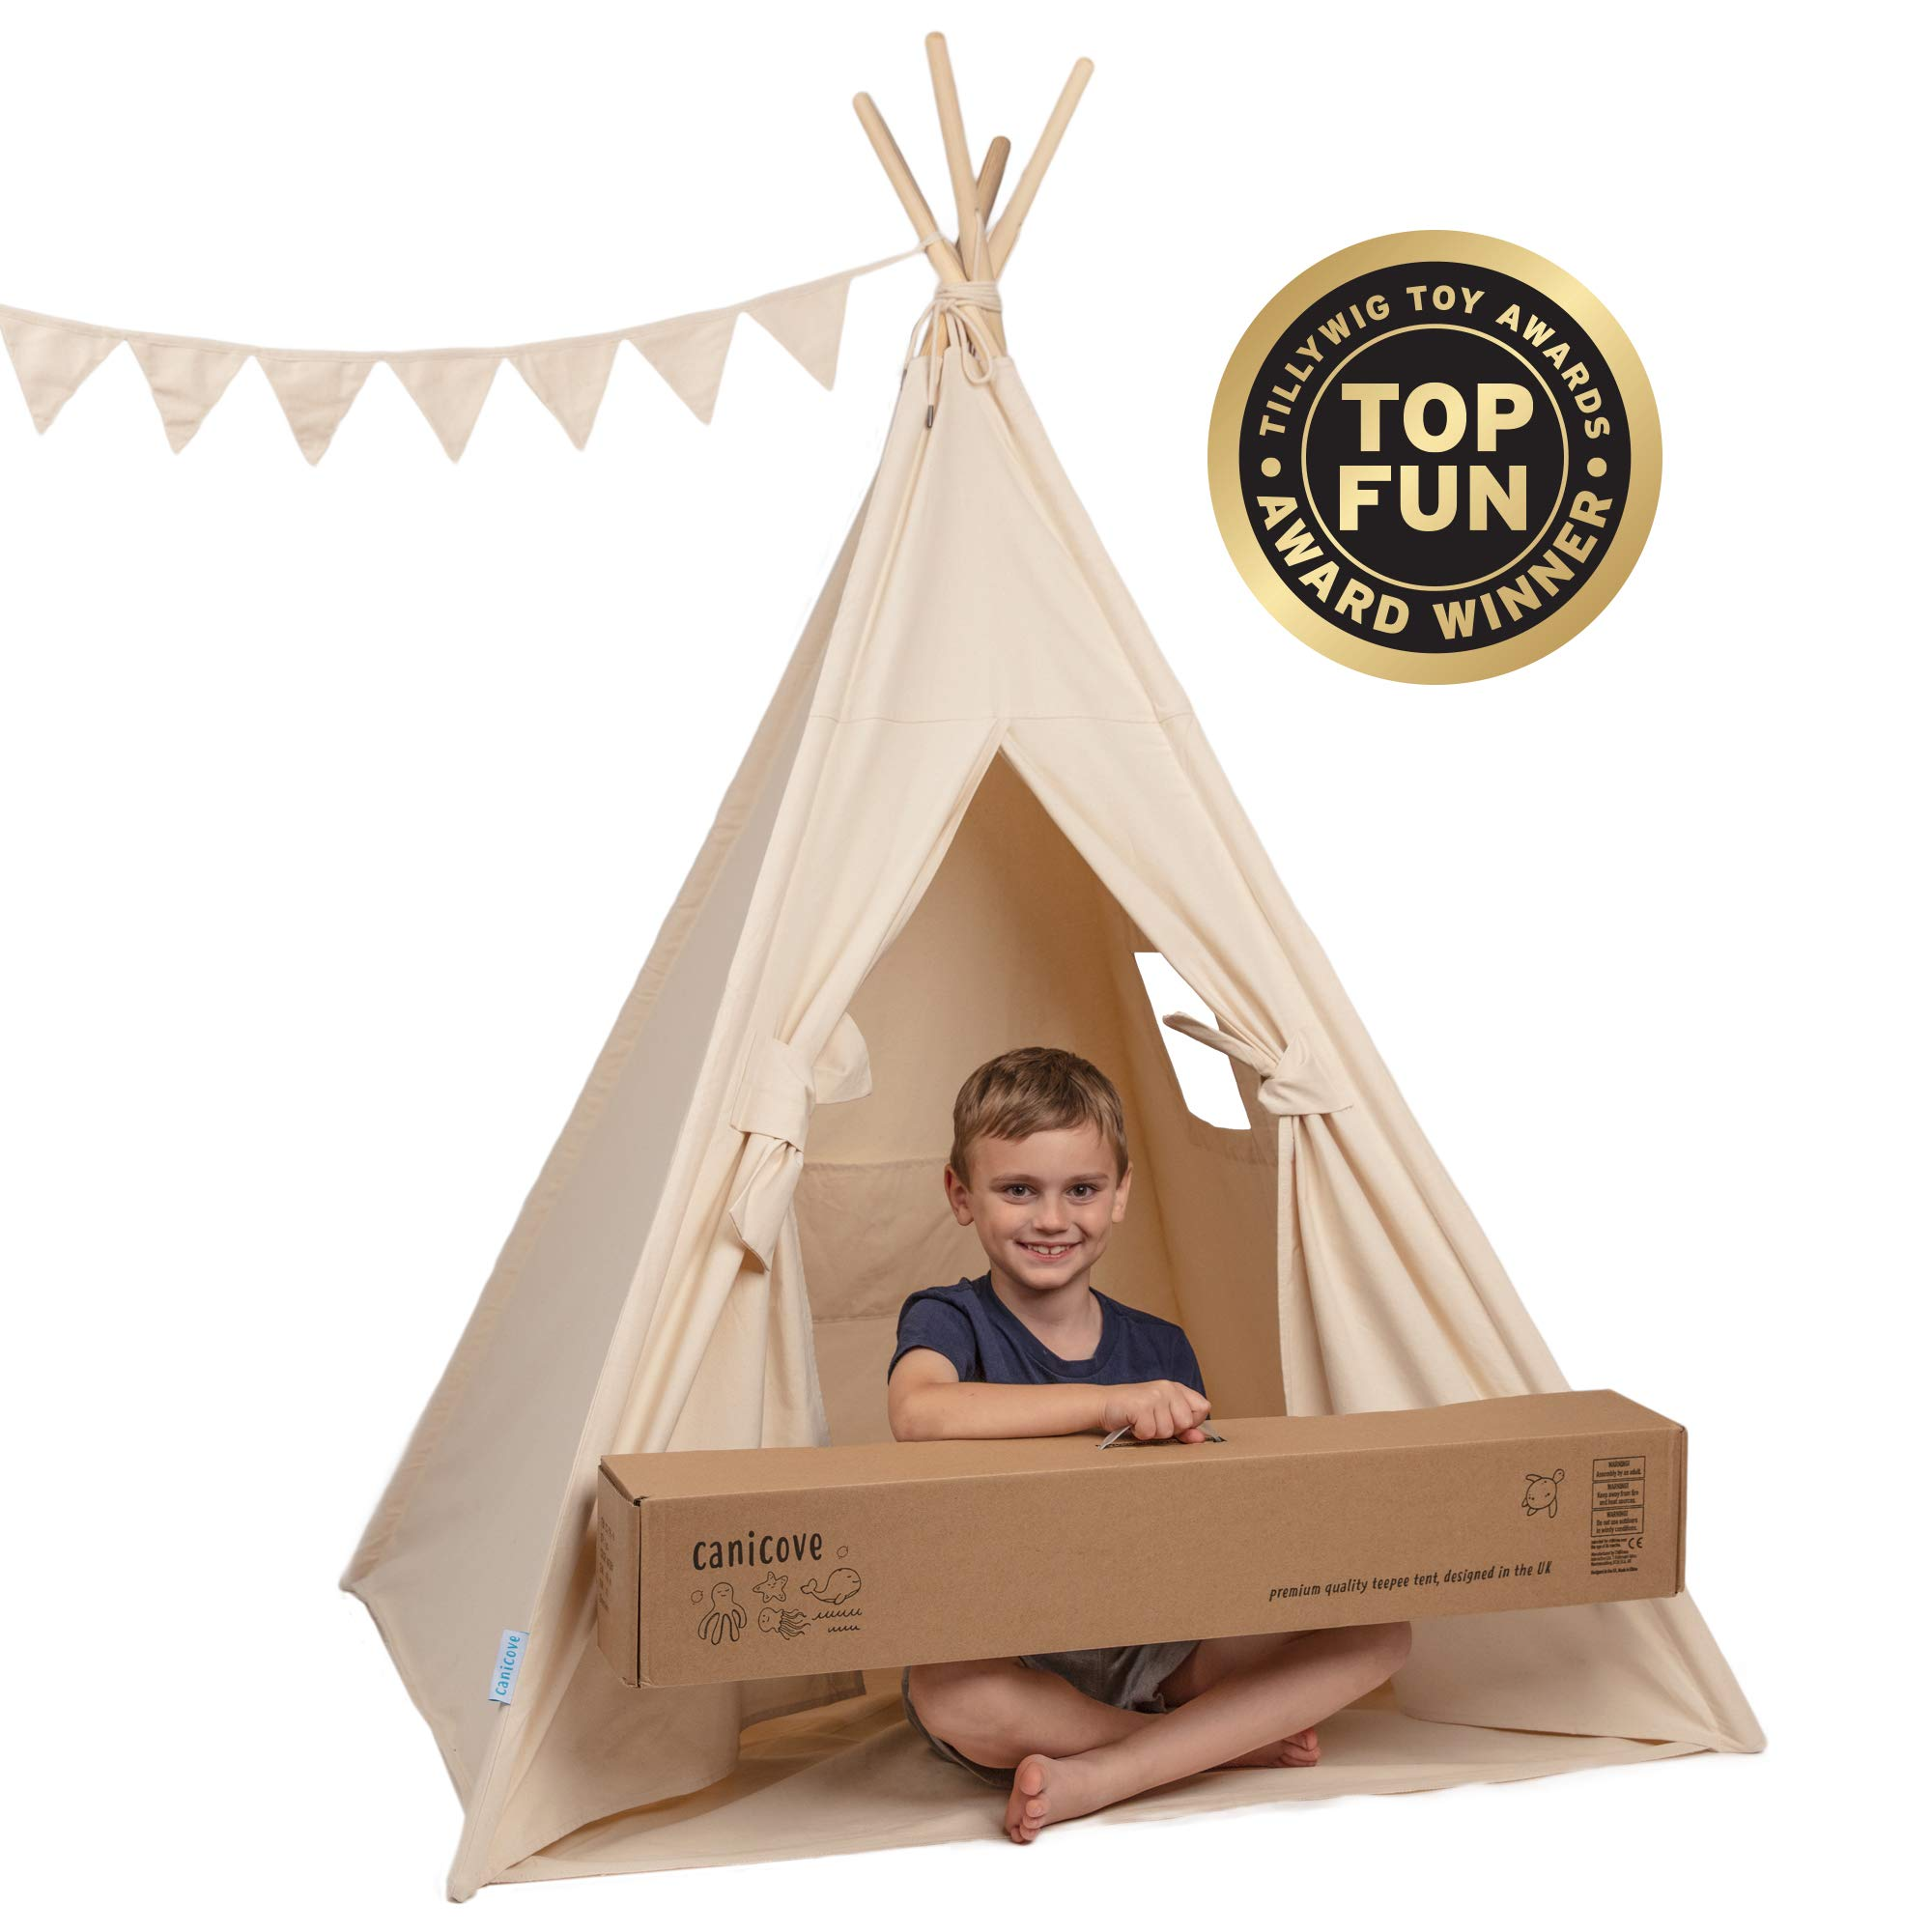 Canicove Teepee Tent for Kids - Award Winning 100% Cotton Play Tent - Large Indoor/Outdoor Tipi for Boys & Girls + Free Fun Flags! by Canicove